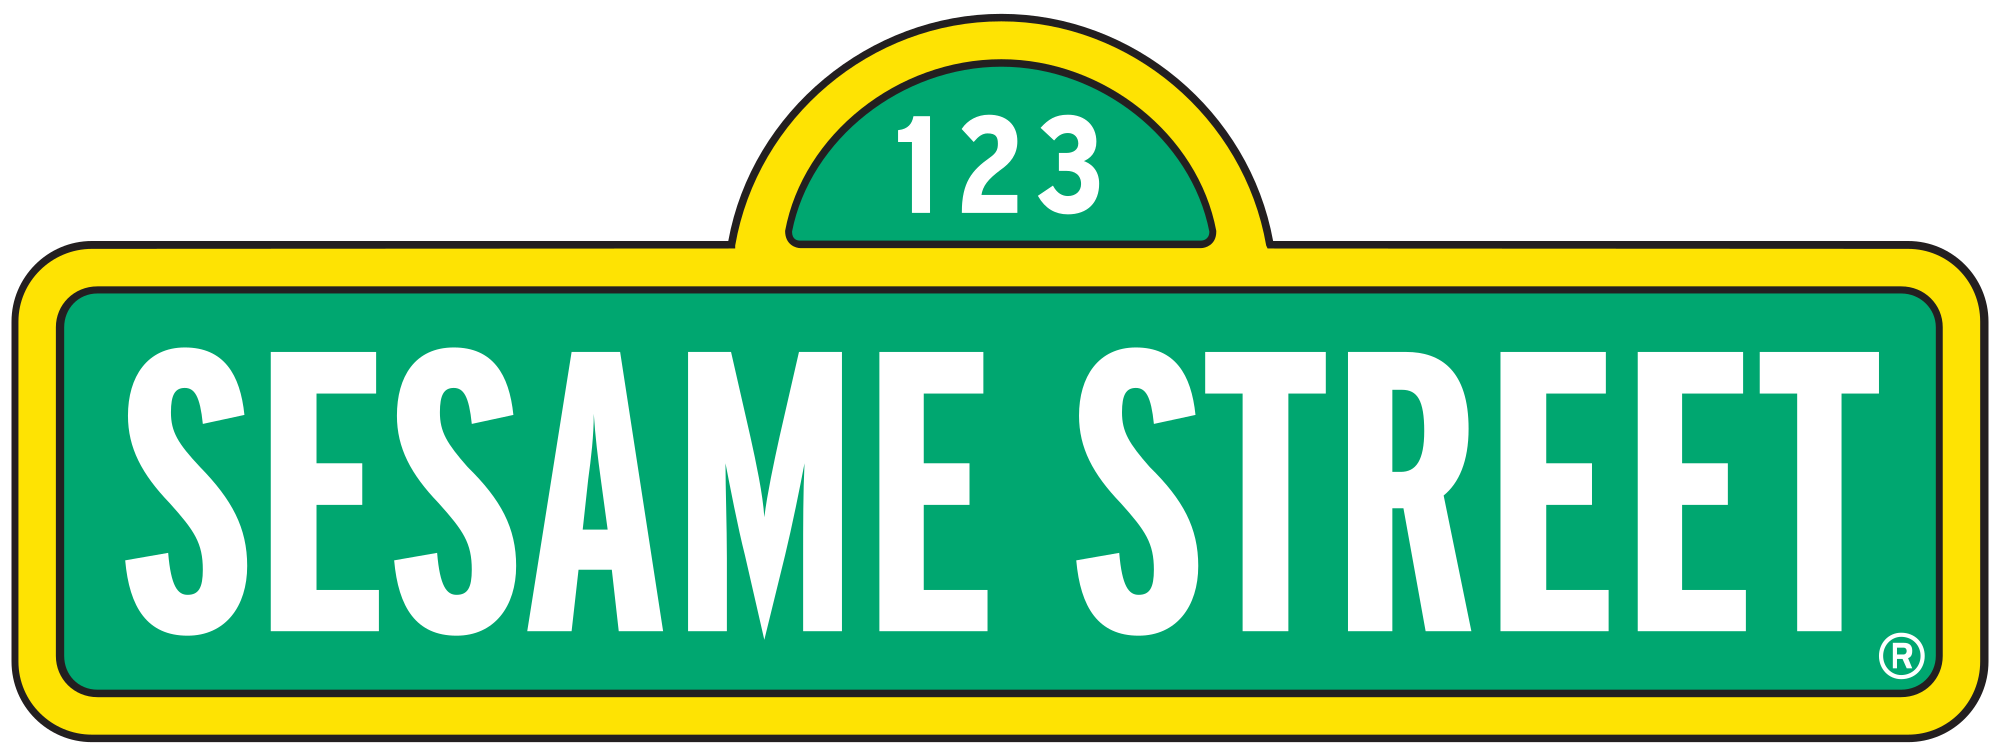 Sesame street sign png. File svg wikimedia commons